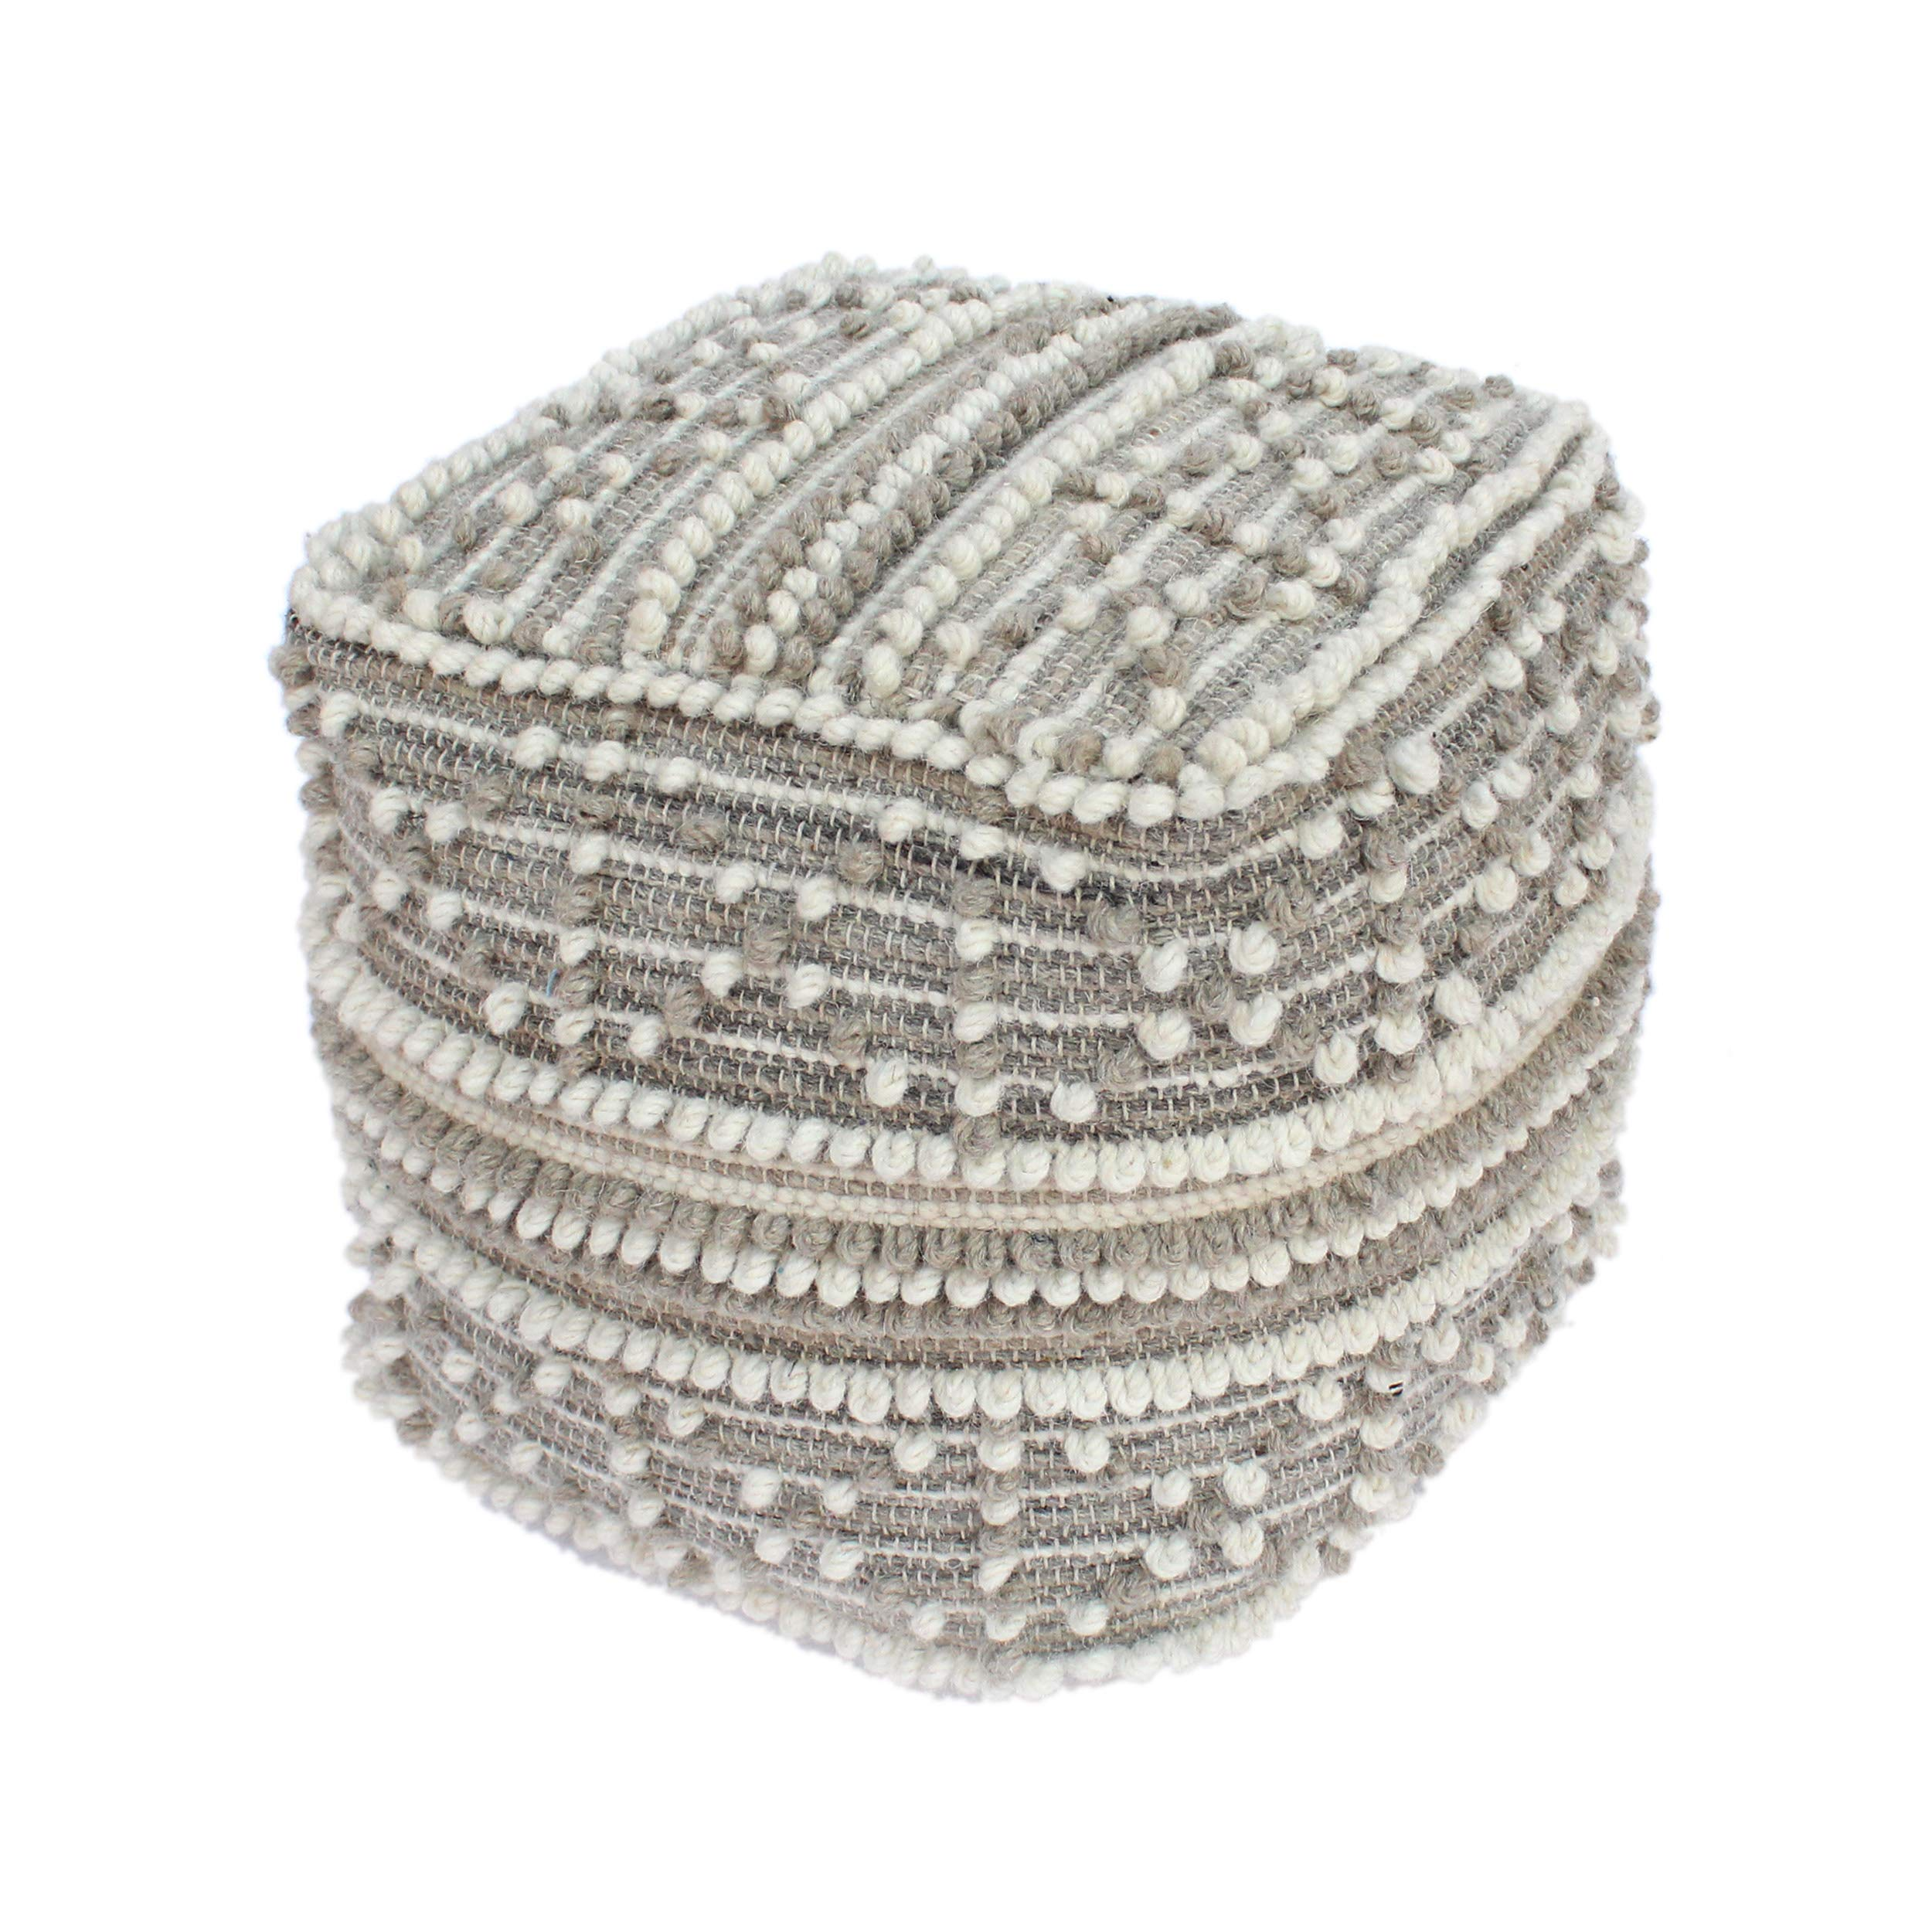 Great Deal Furniture Ishara Boho Cube Wool and Cotton Pouf, White and Beige by Great Deal Furniture